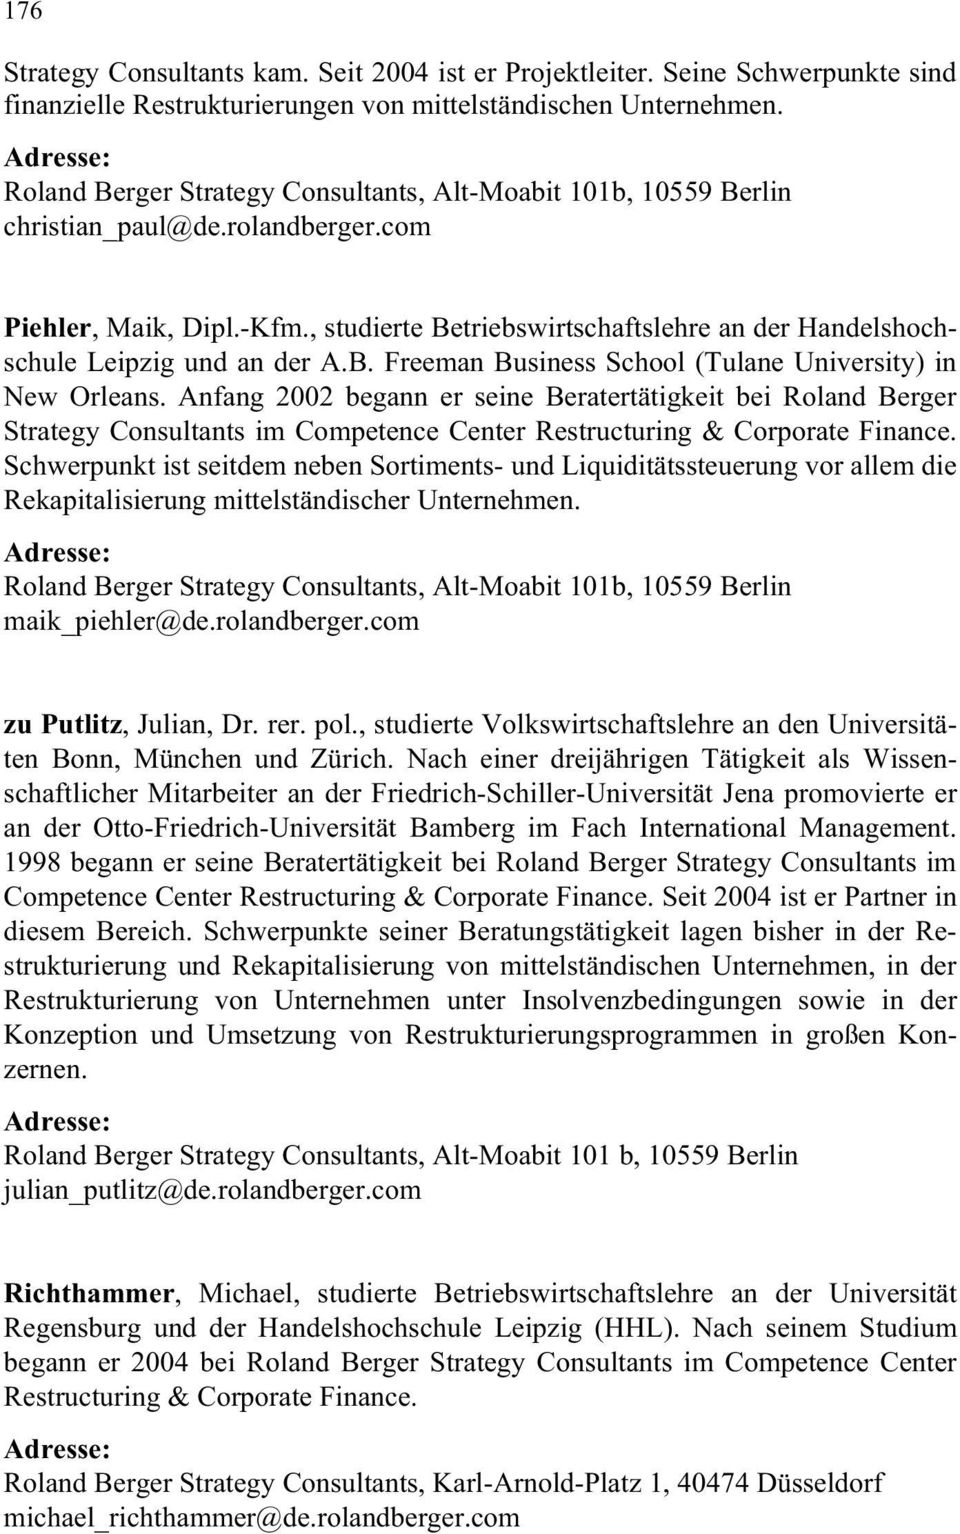 Anfang 2002 begann er seine Beratertätigkeit bei Roland Berger Strategy Consultants im Competence Center Restructuring & Corporate Finance.